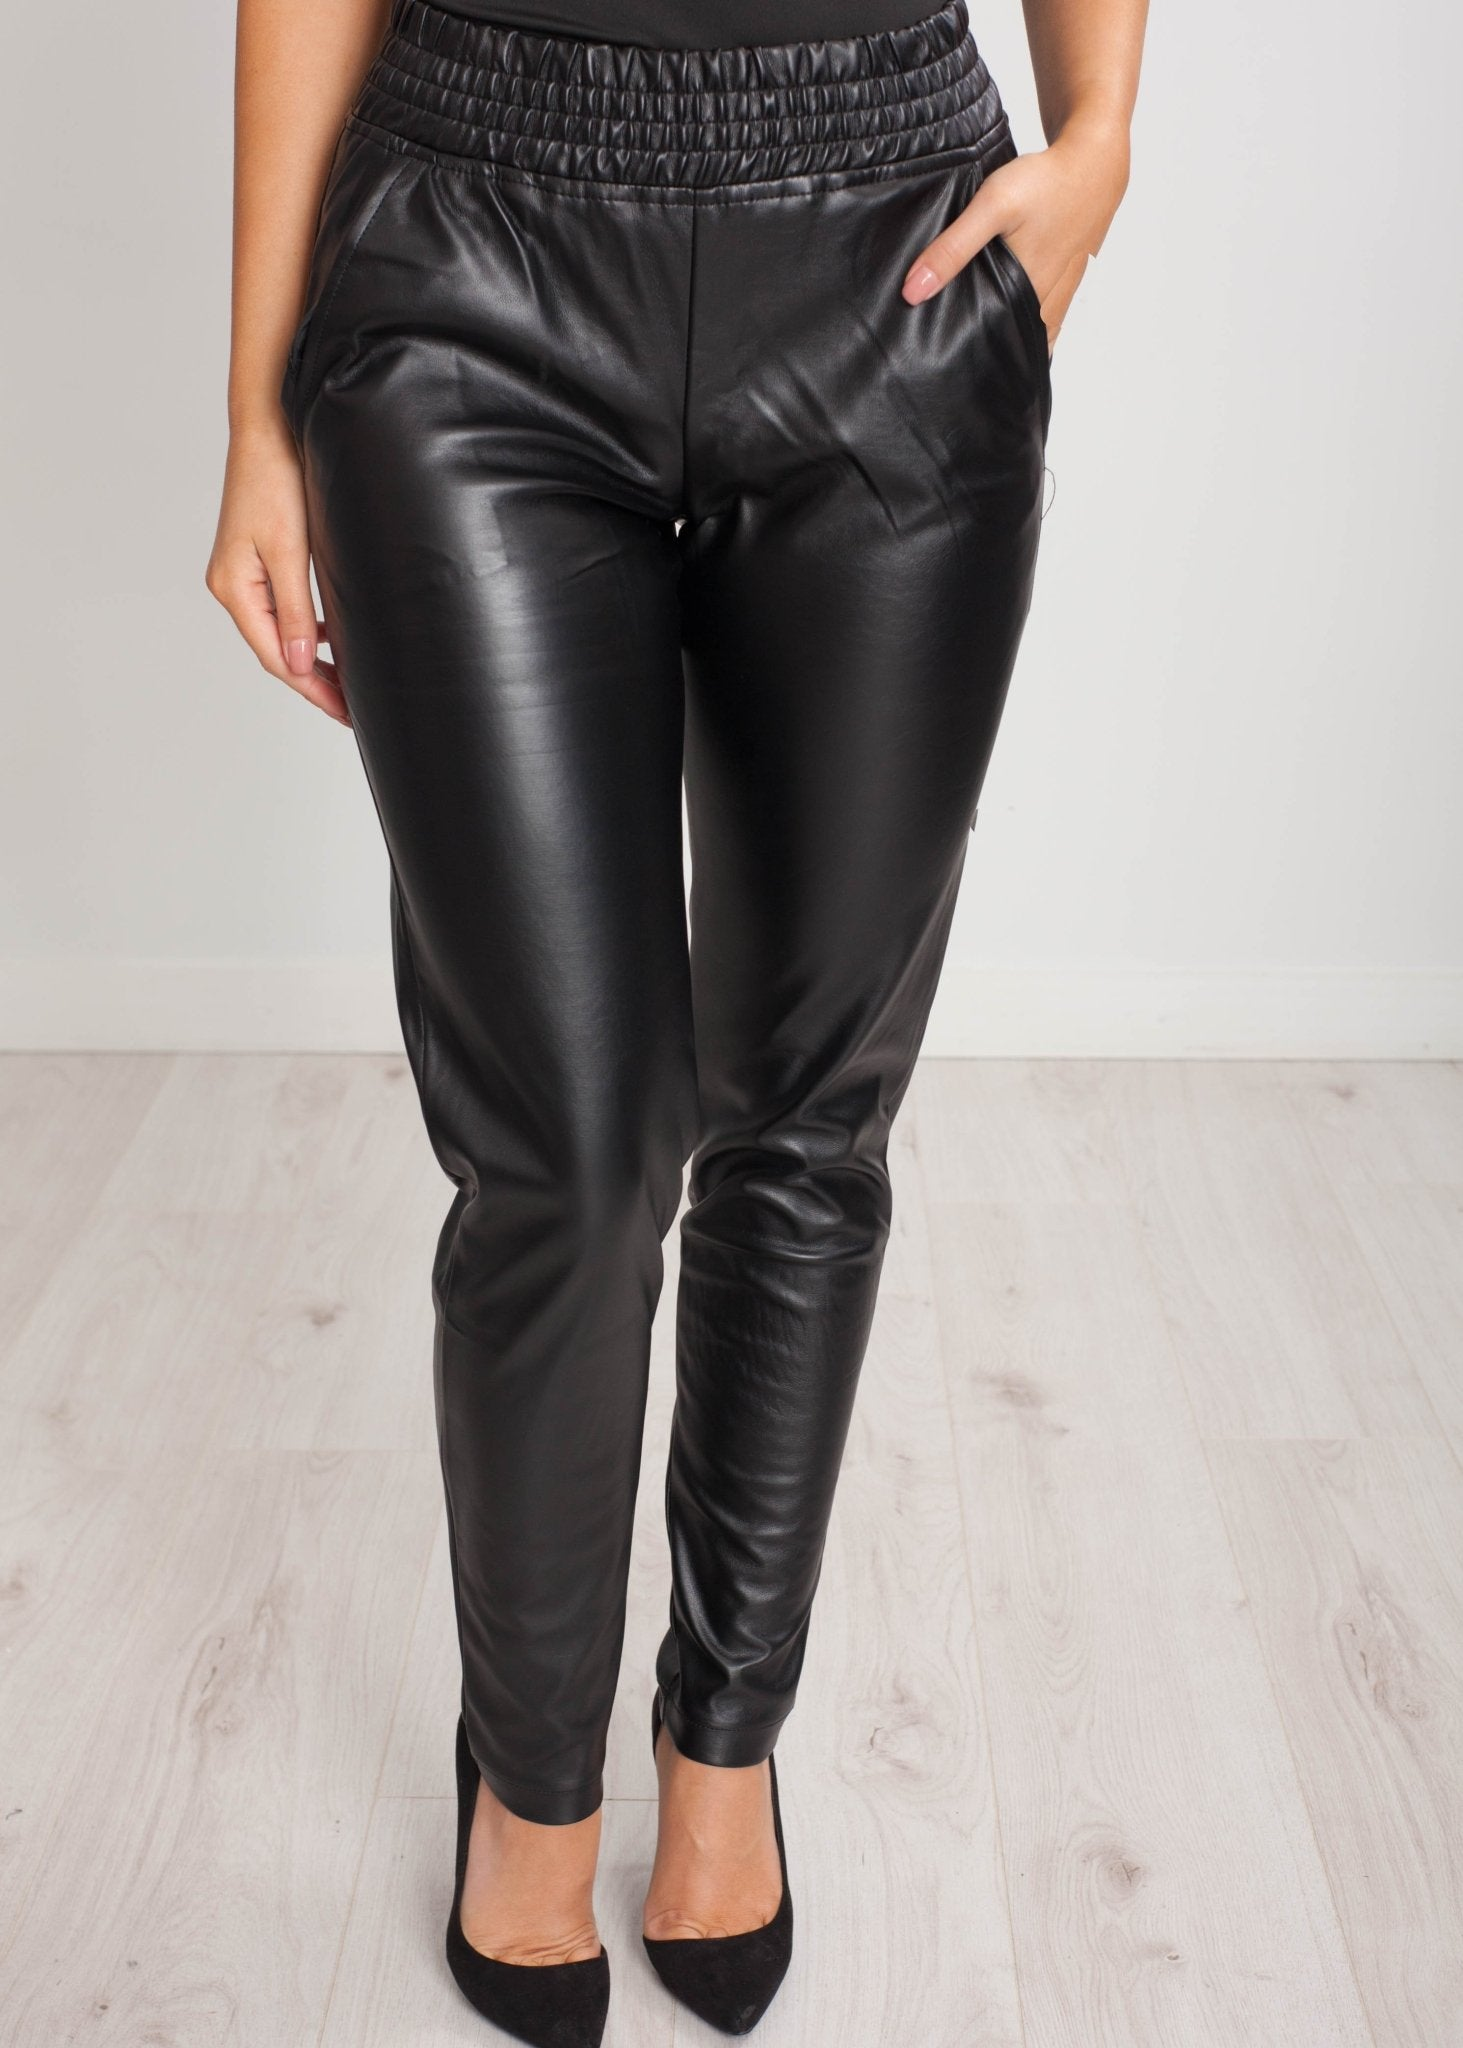 Sissy Faux Leather Jogger in Black - The Walk in Wardrobe